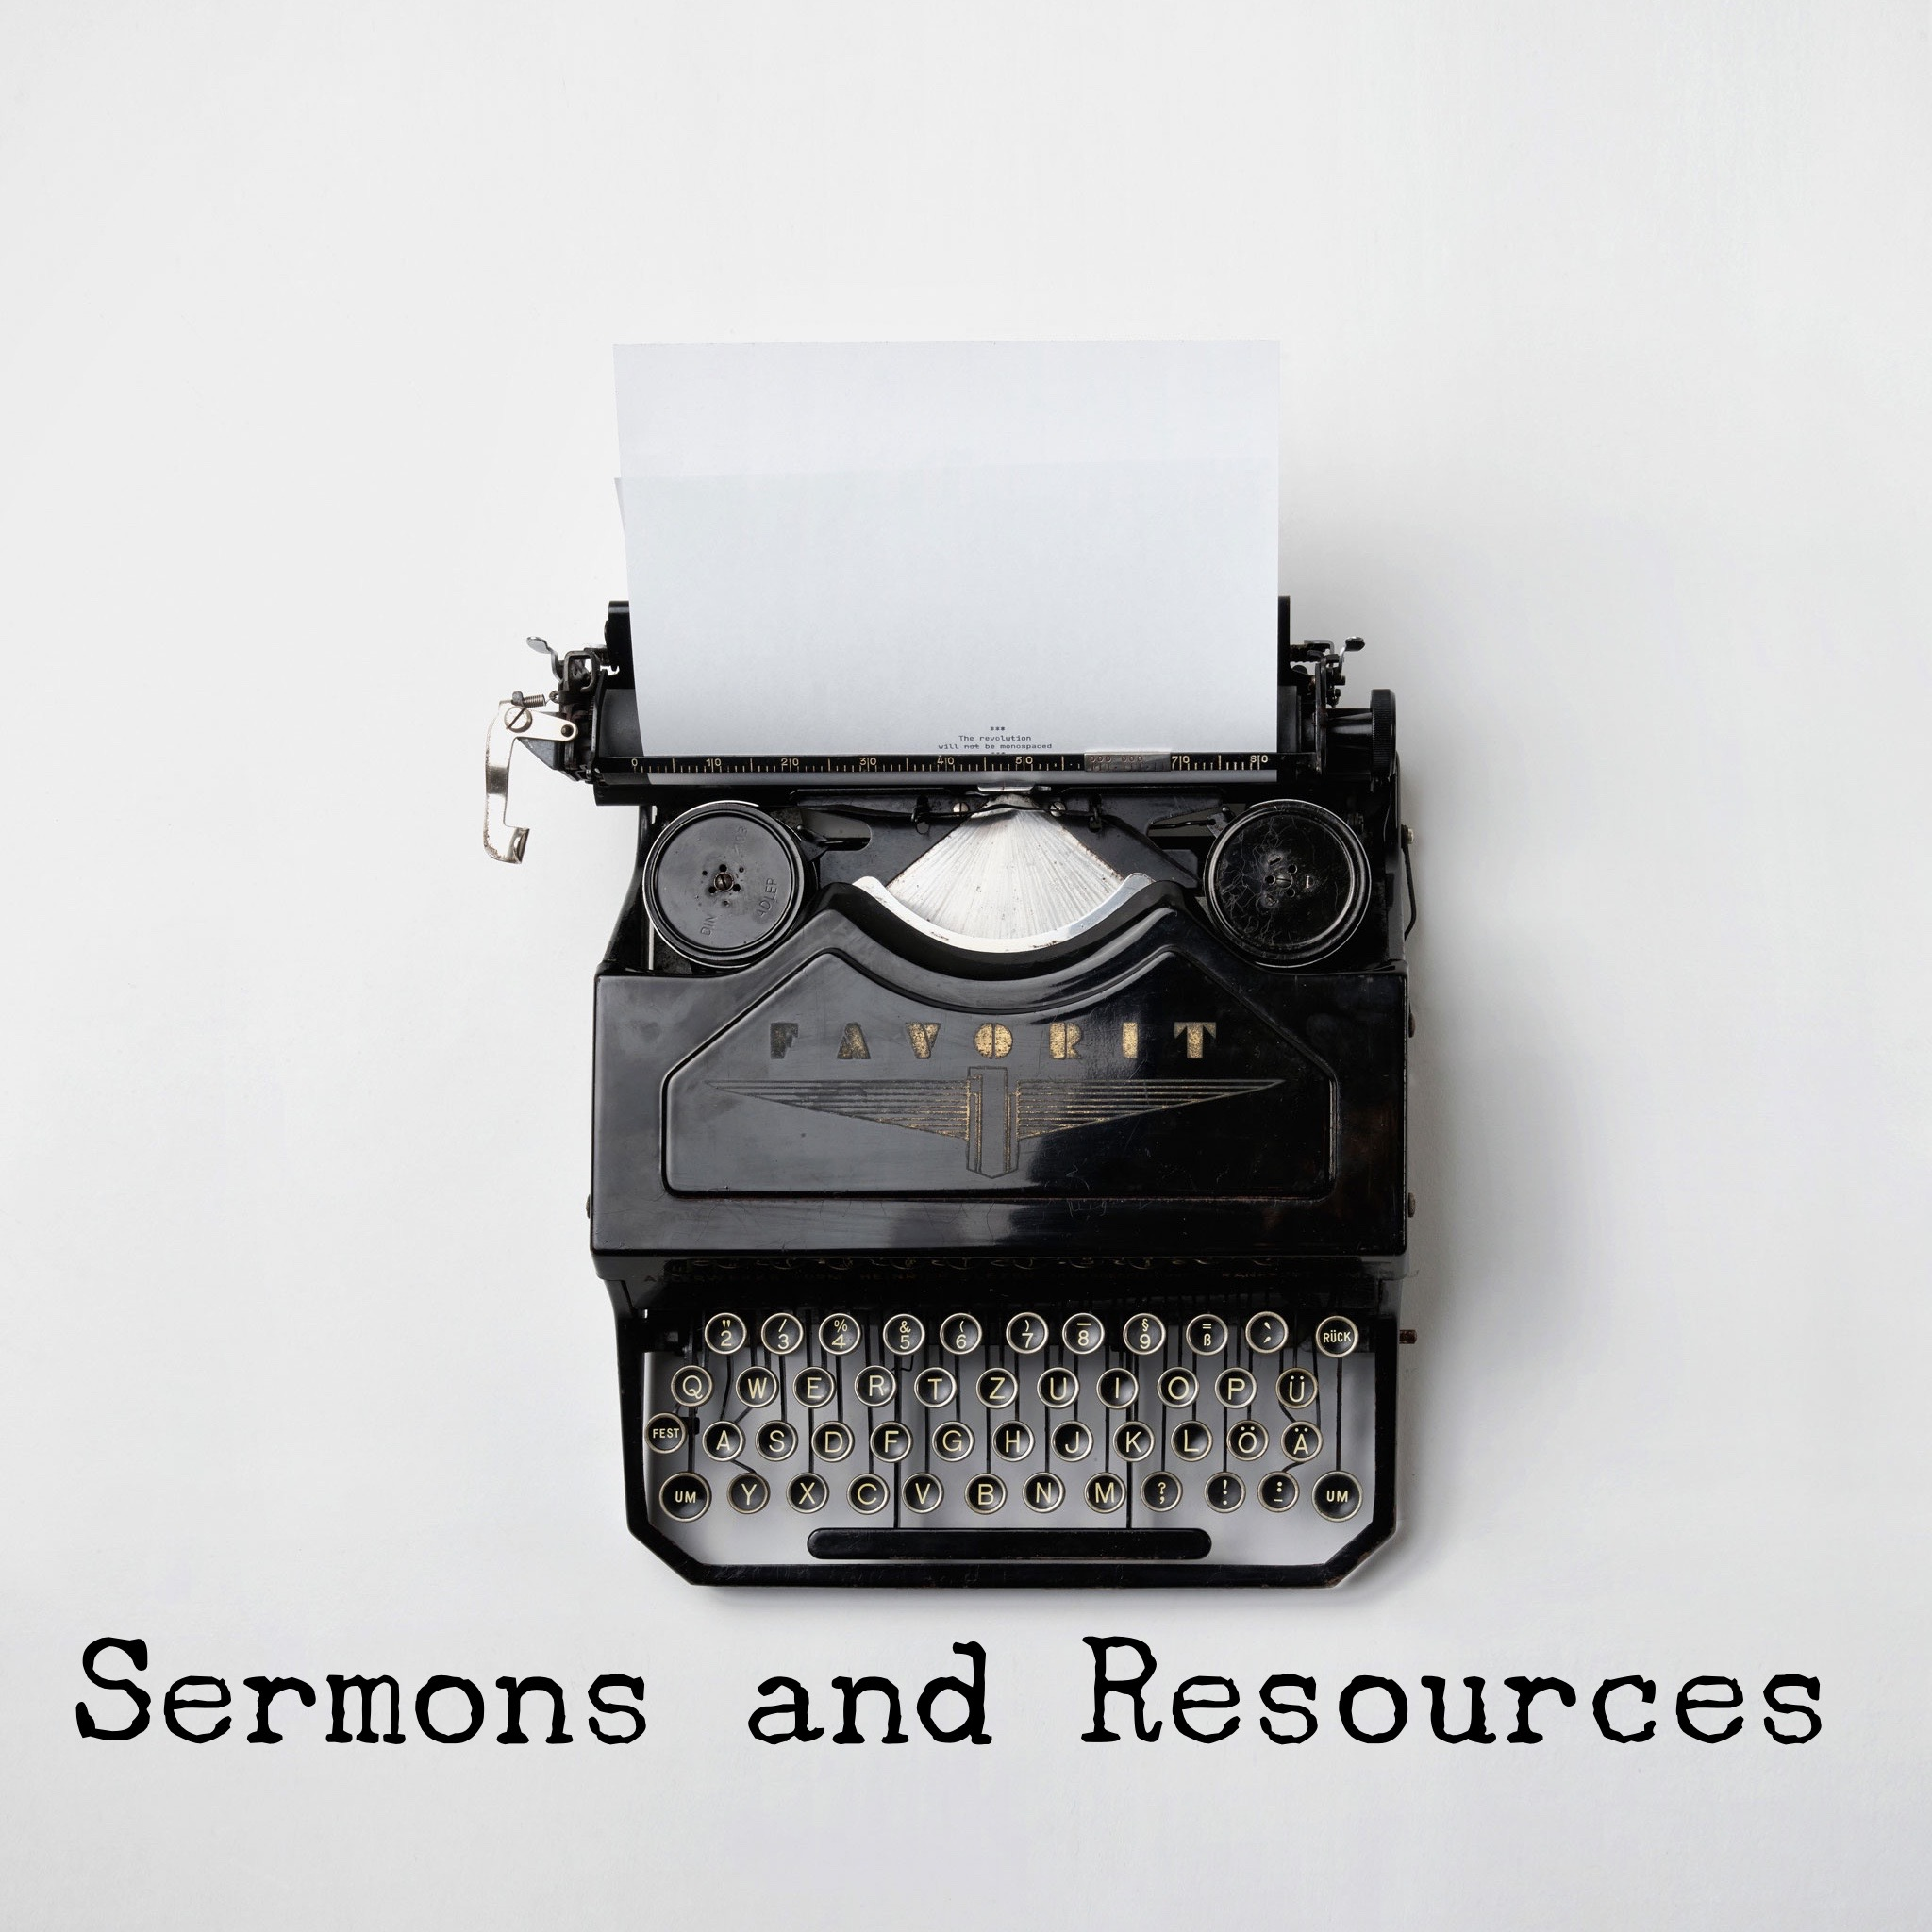 Sermons and Resources